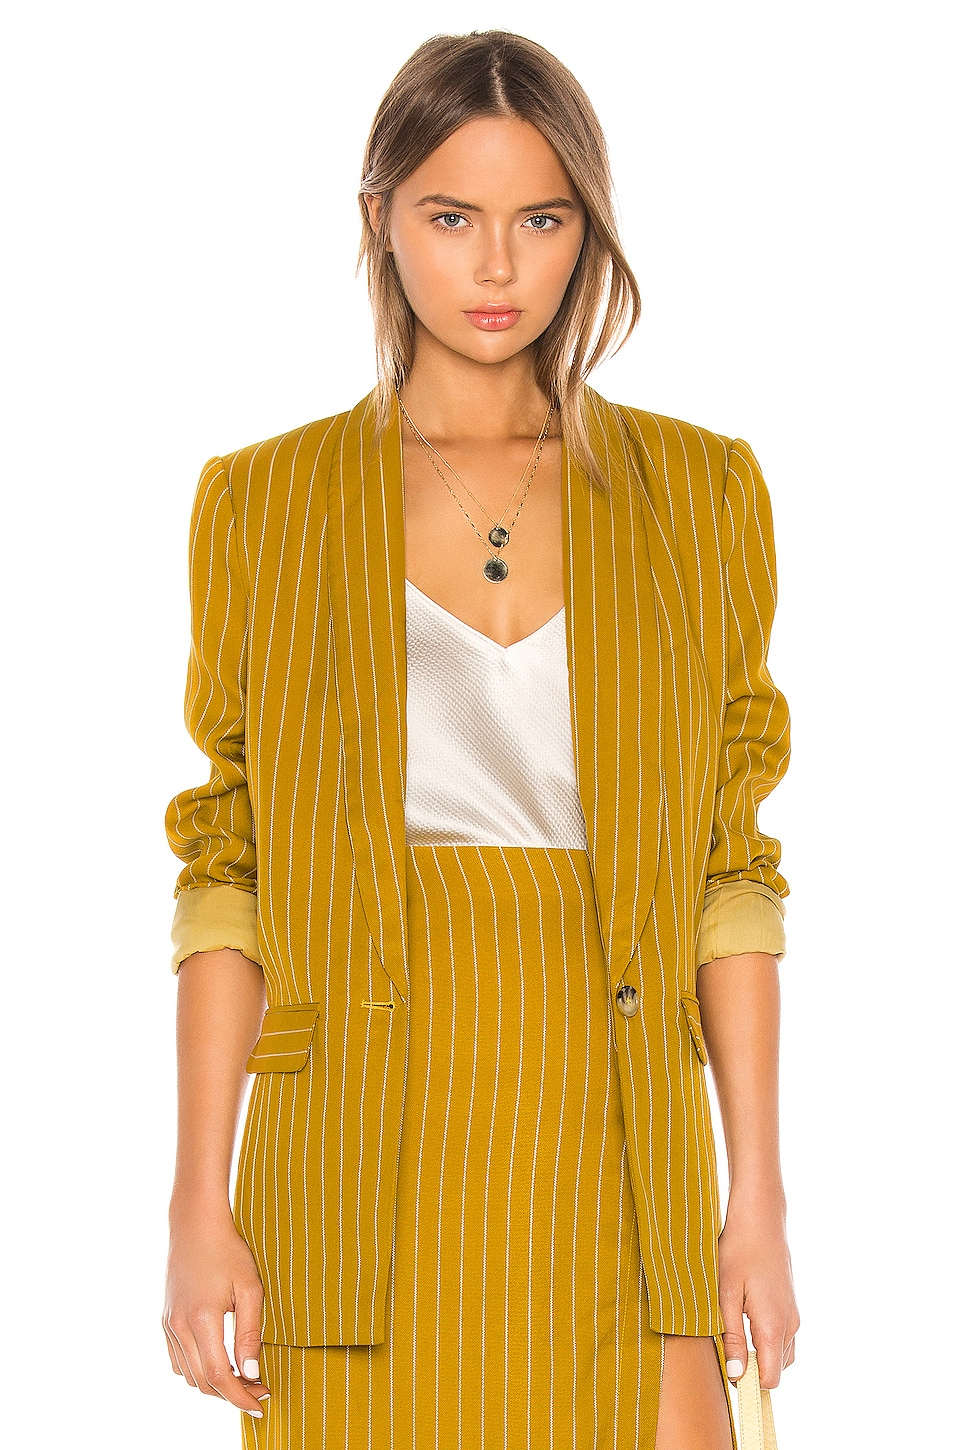 L'Academie The Fleur Blazer in Mustard & White